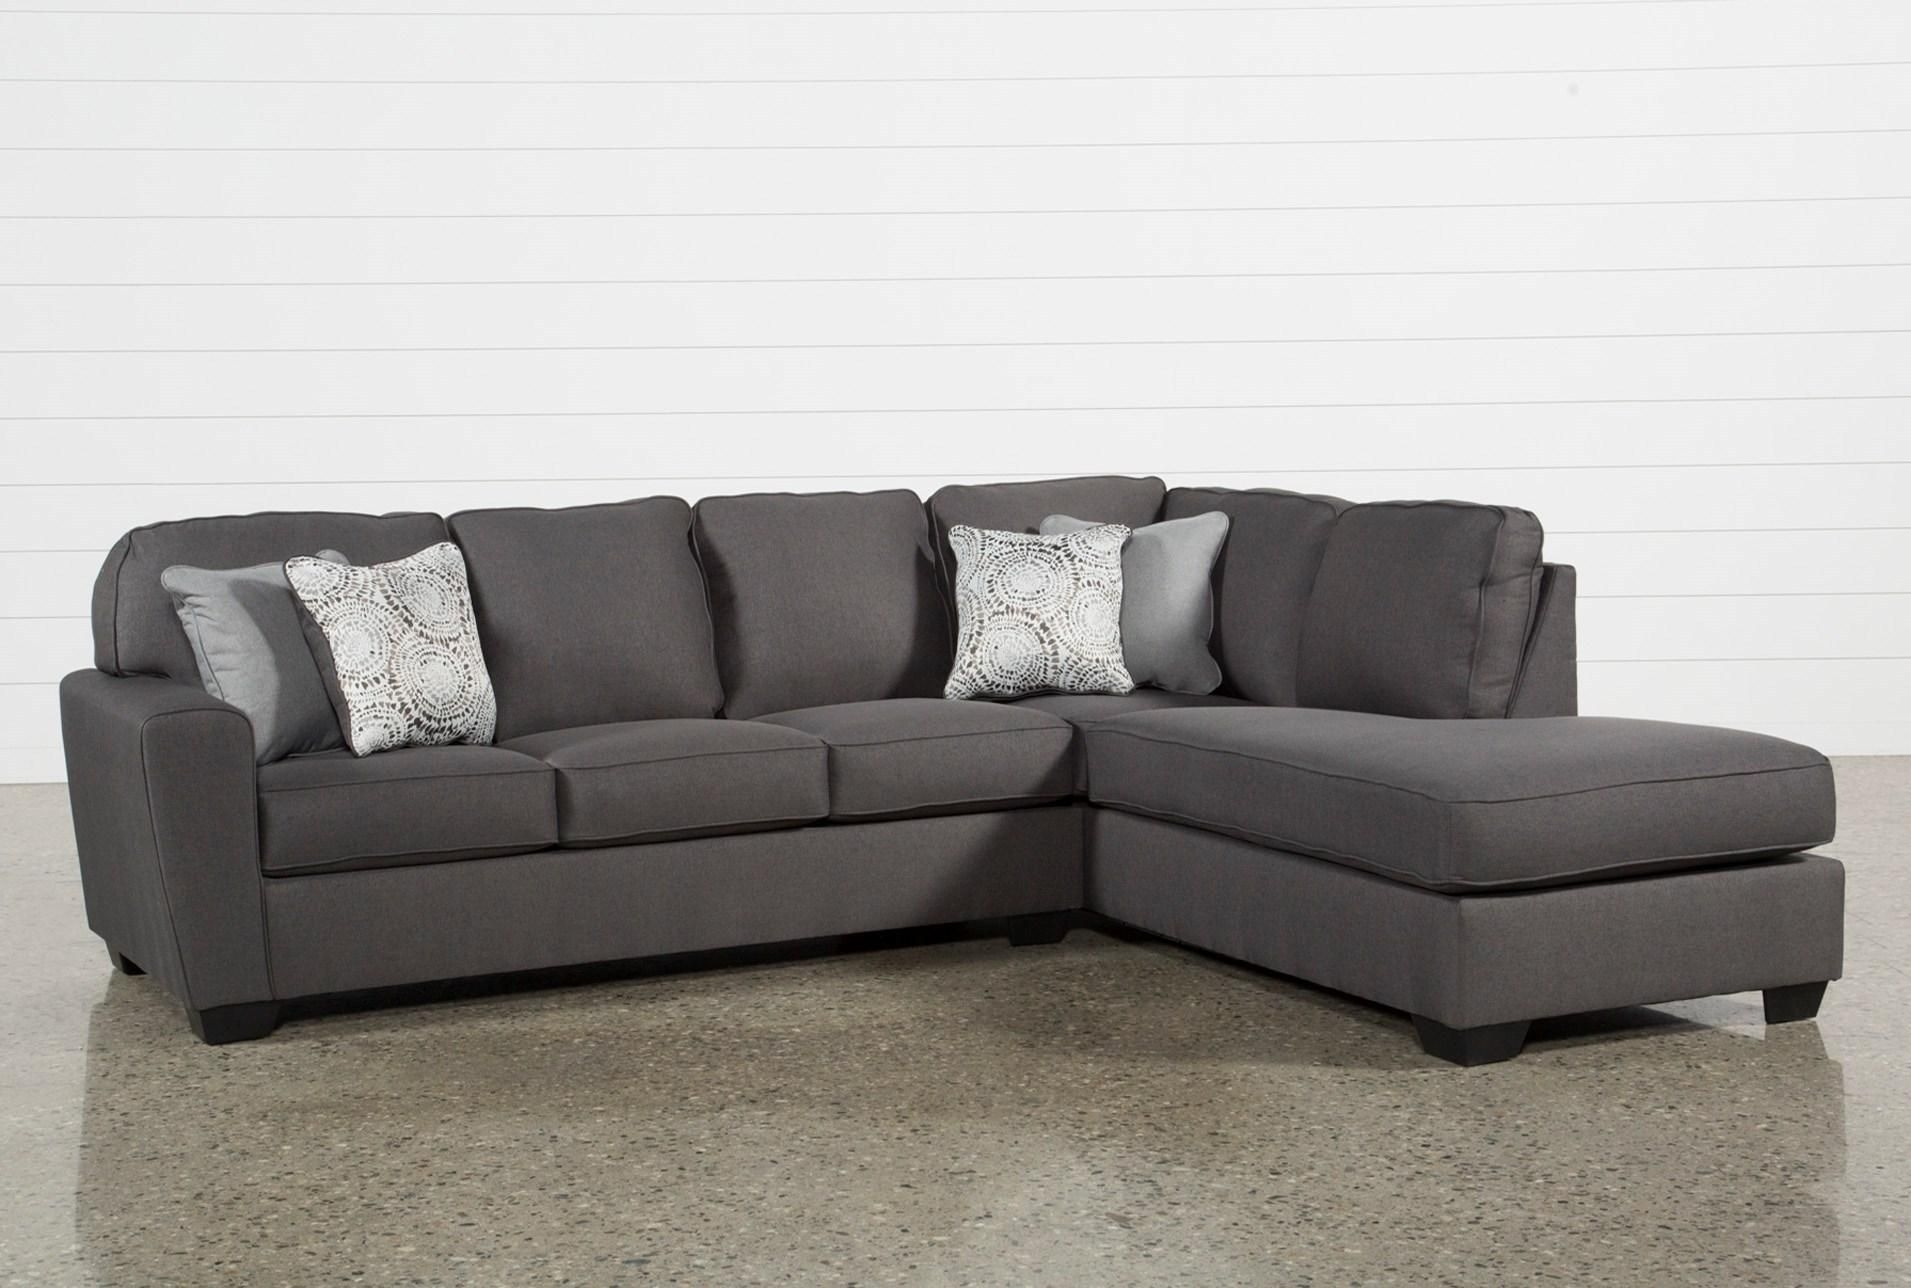 Mcdade Graphite 2 Piece Sectional W/raf Chaise | Livingroom pertaining to Josephine 2 Piece Sectionals With Raf Sofa (Image 18 of 30)